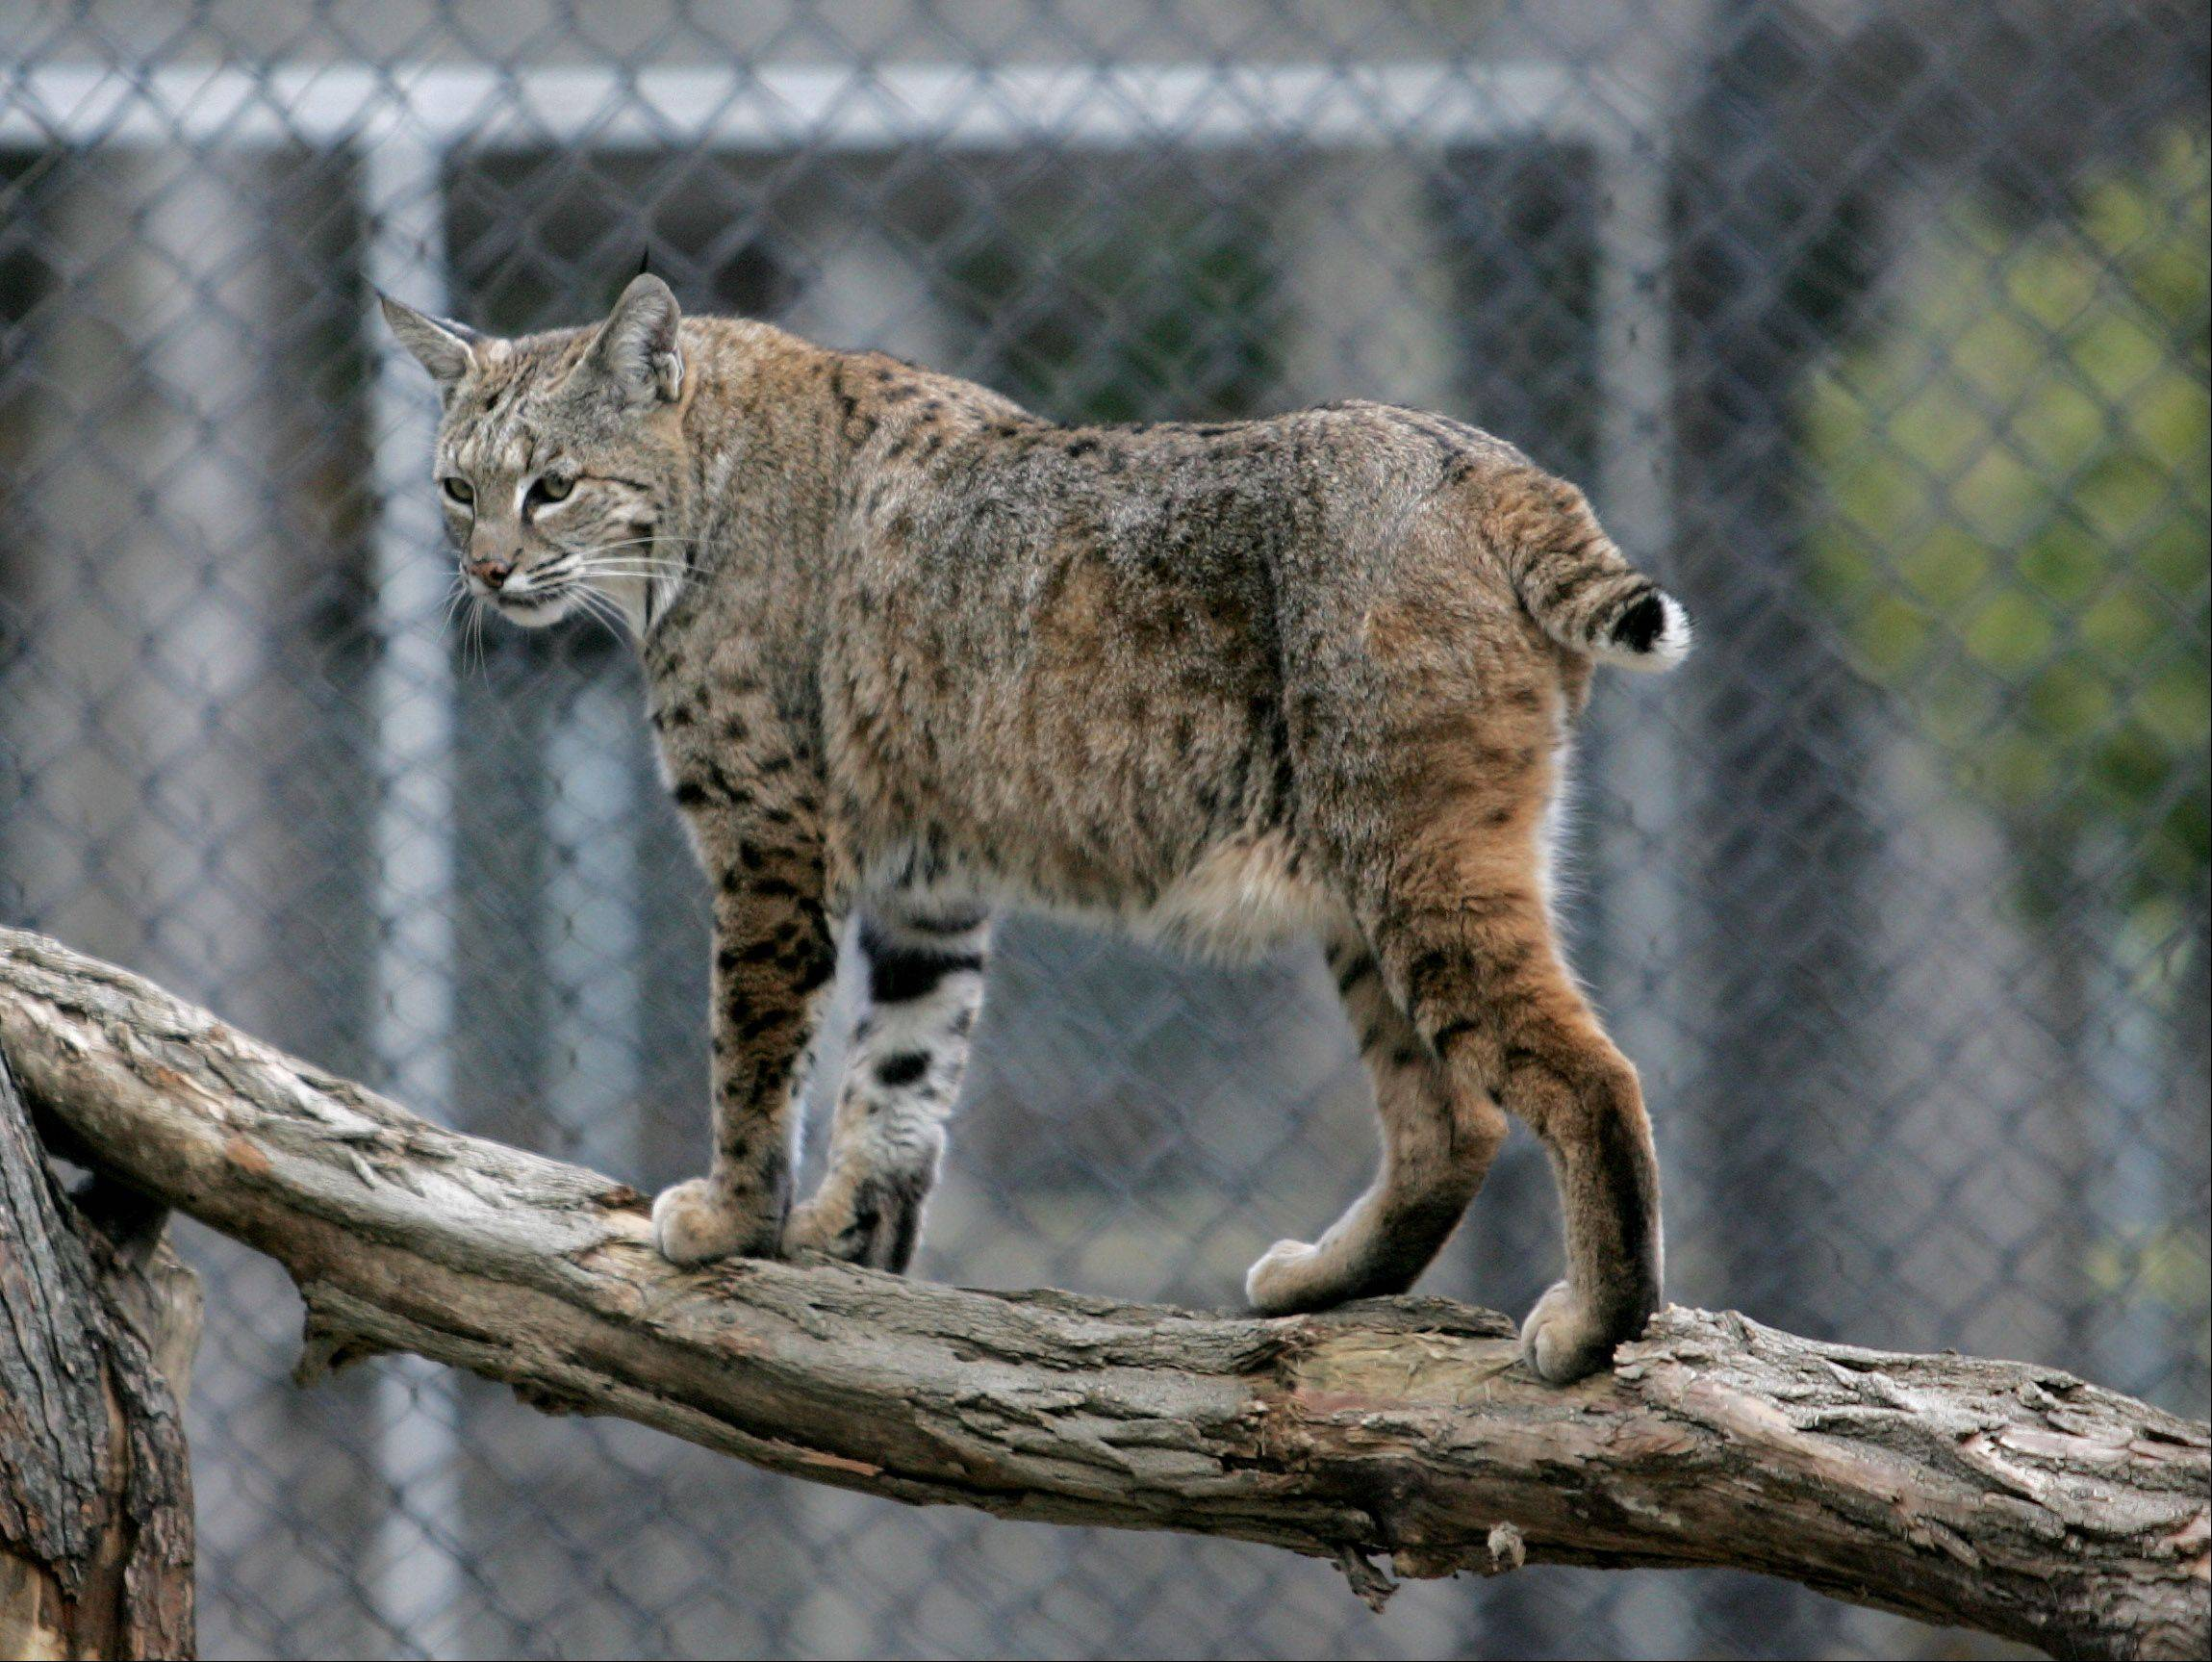 Salvatore checks things out at the bobcat exhibit now open at Cosley Zoo in Wheaton.